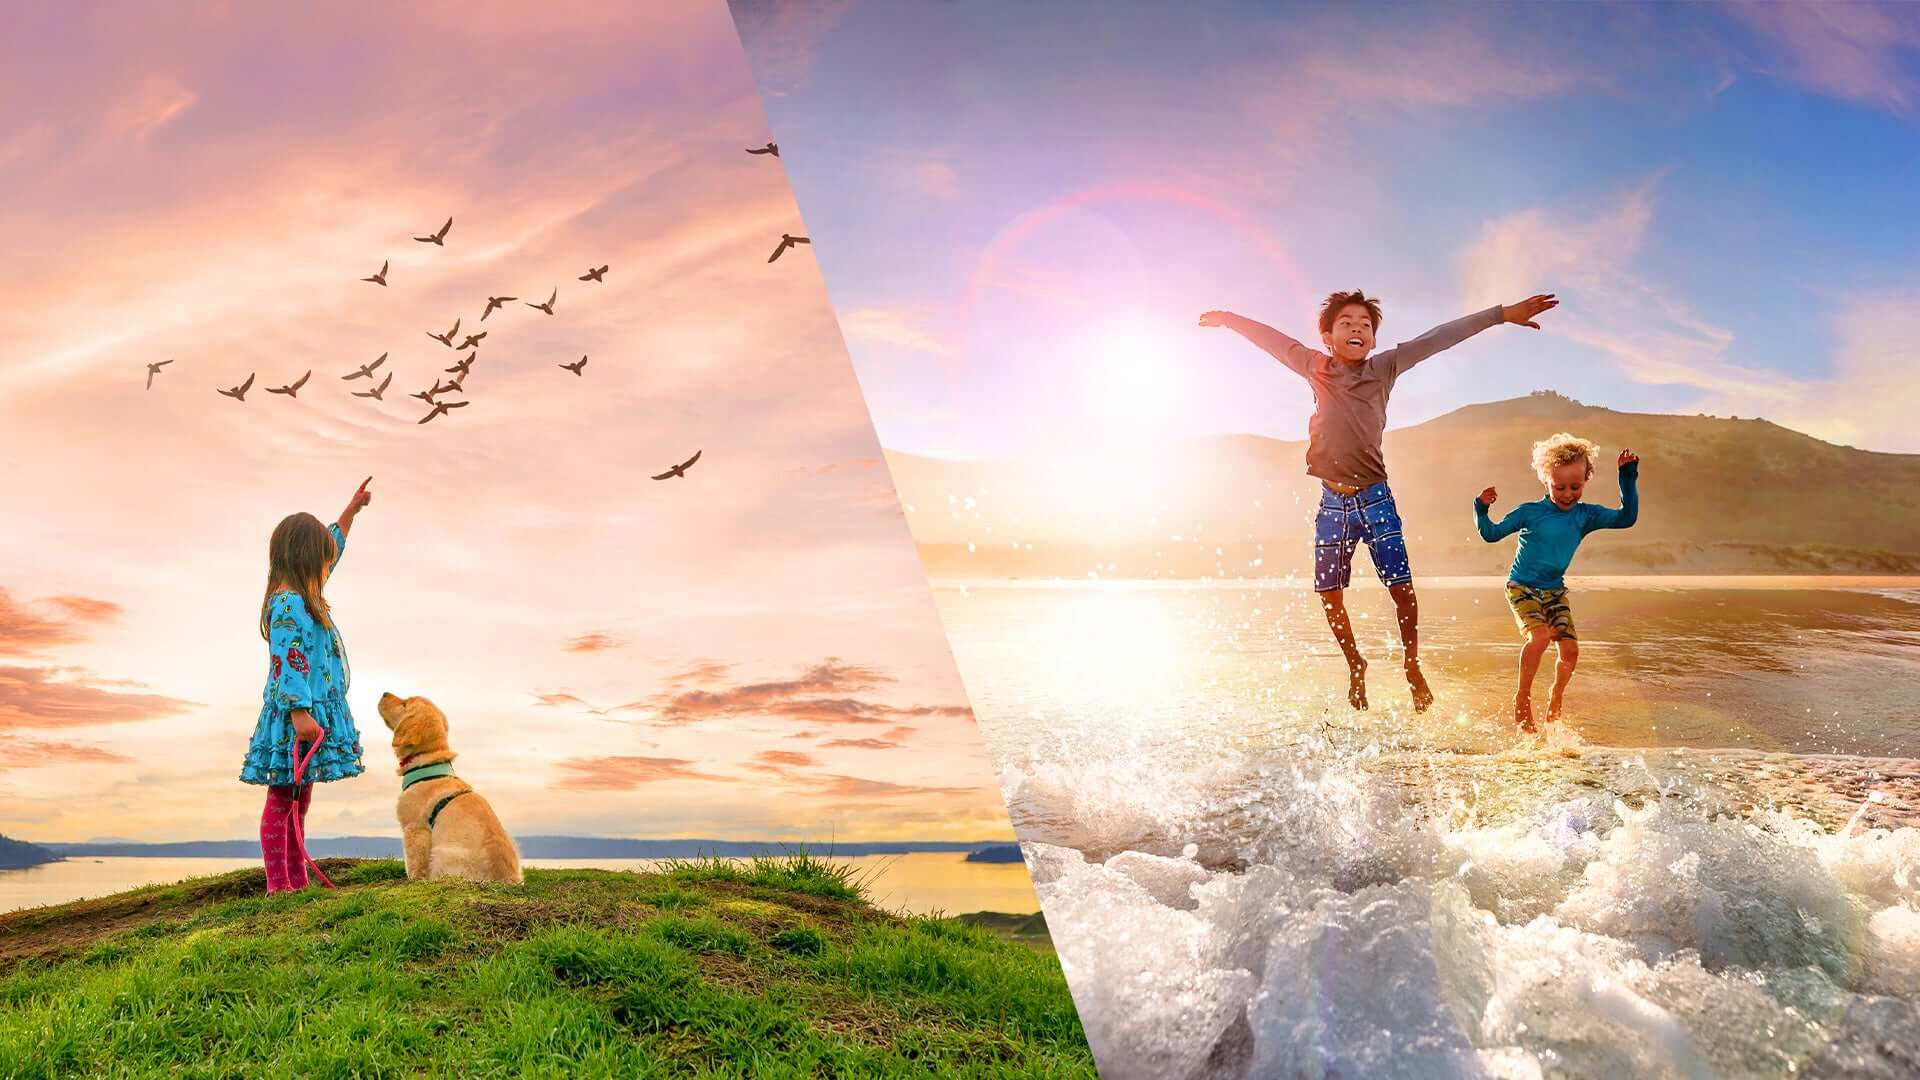 Adobe announced Photoshop Elements 2021 and Premiere Elements 2021